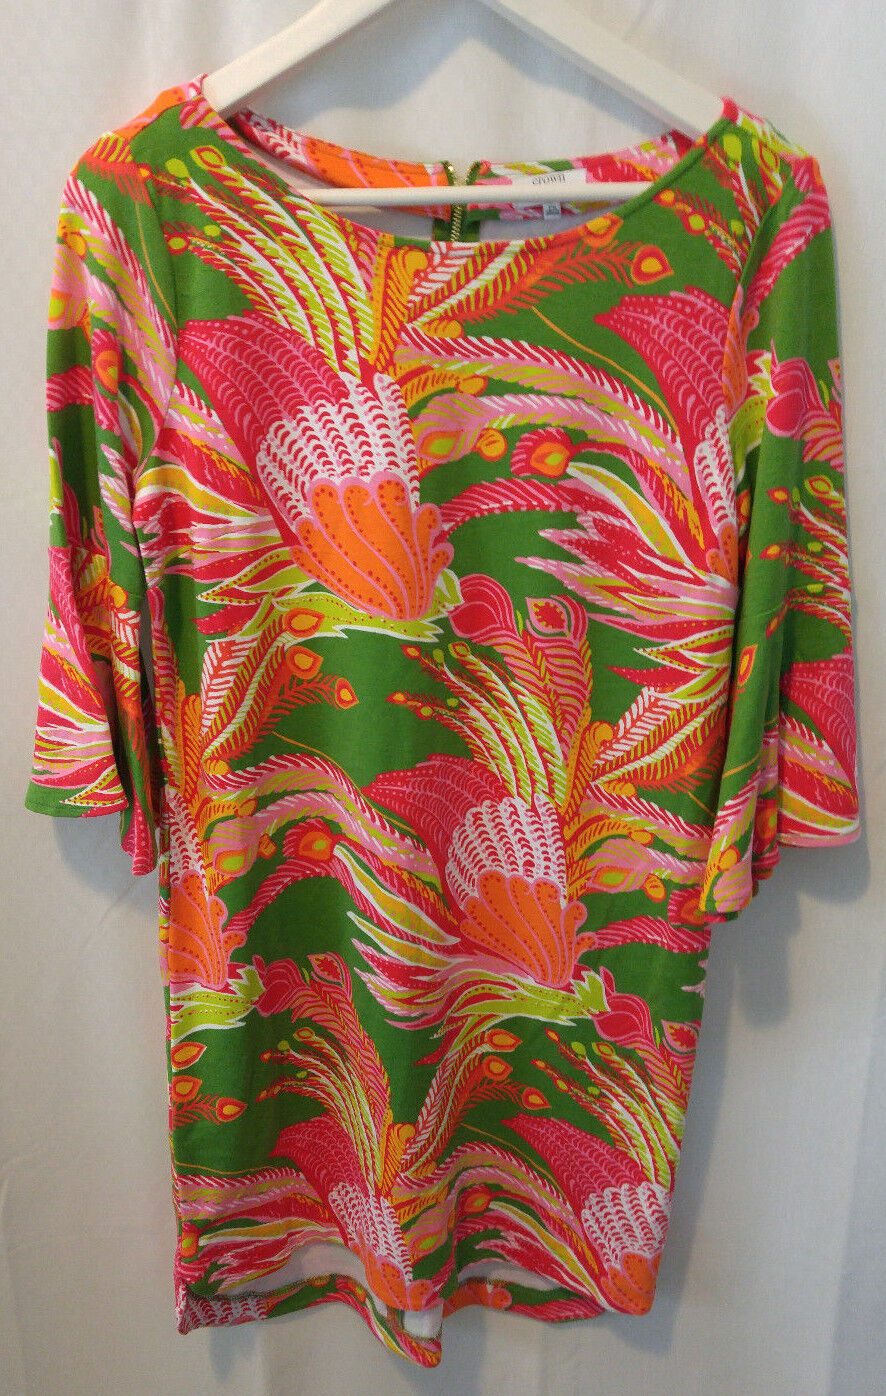 Crown & Ivy Dress Size Petite Small Floral Shift Fridas Garden Bell Sleeves